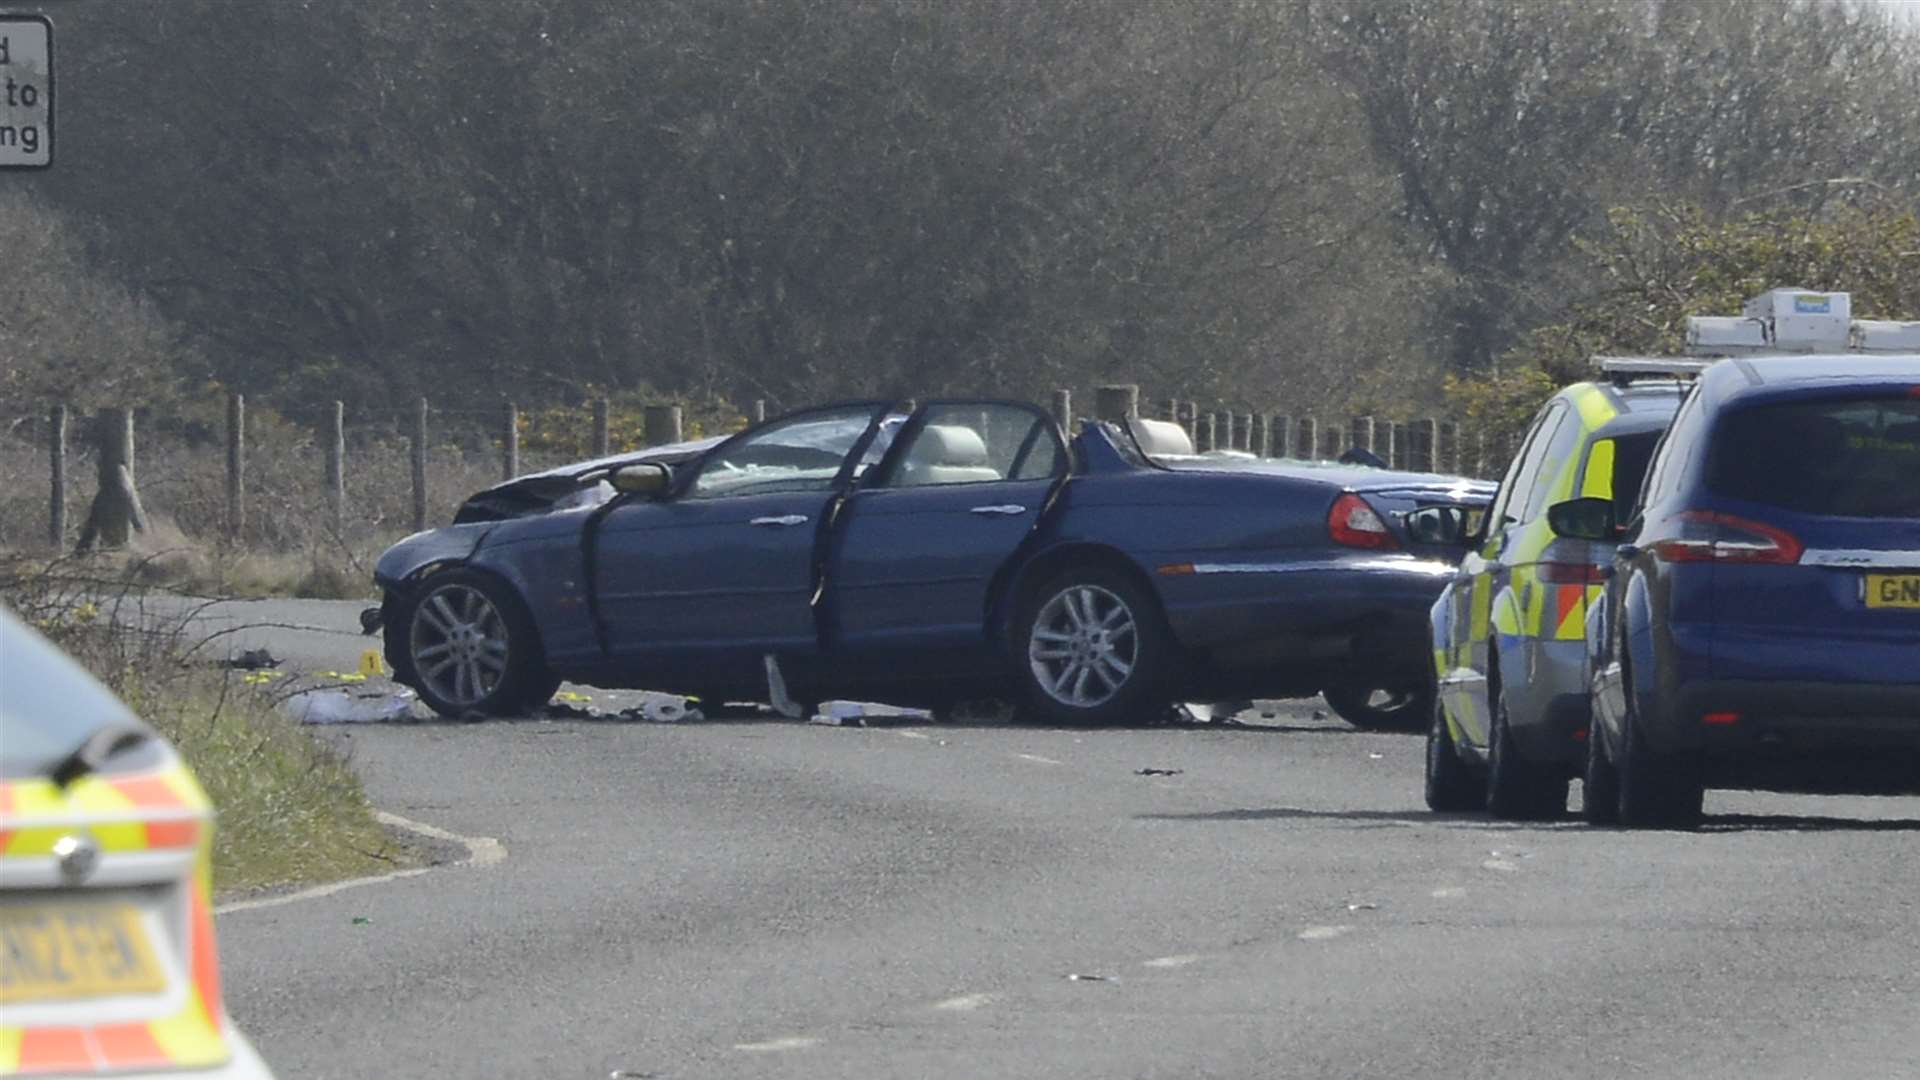 The Jaguar involved in the crash. Picture: Paul Amos